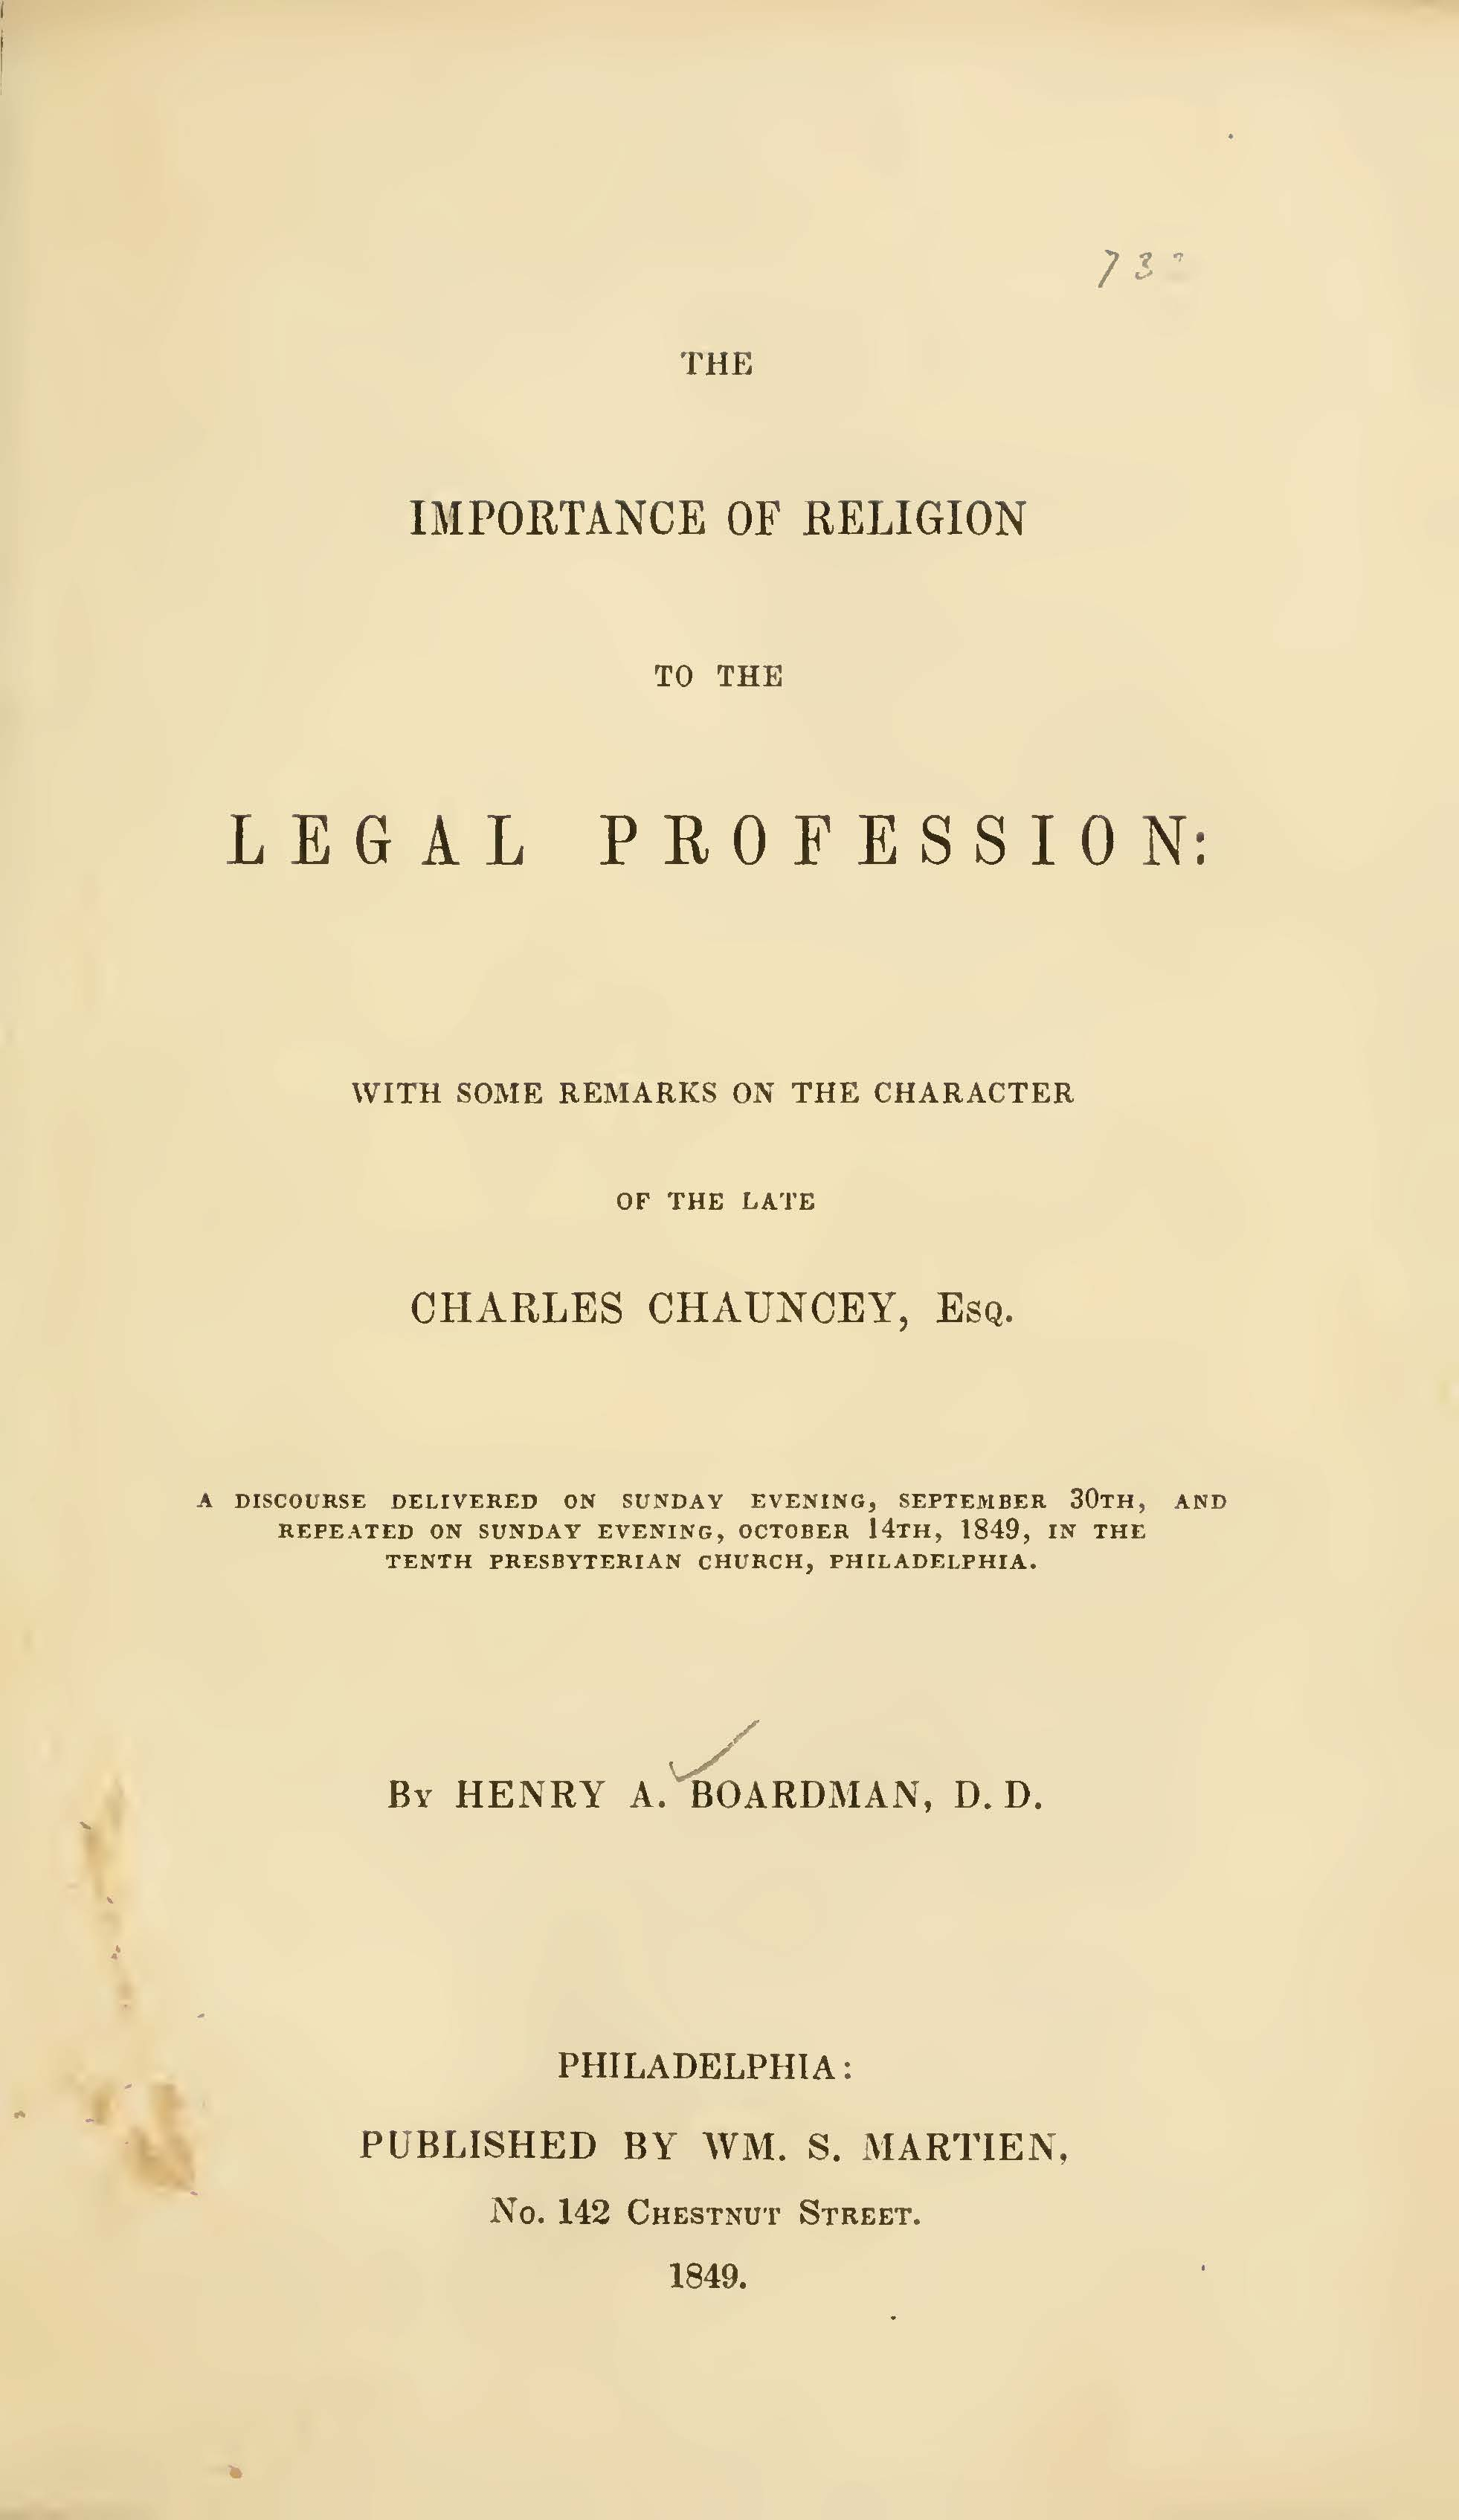 Boardman, Henry Augustus, The Importance of Religion to the Legal Profession Title Page.jpg